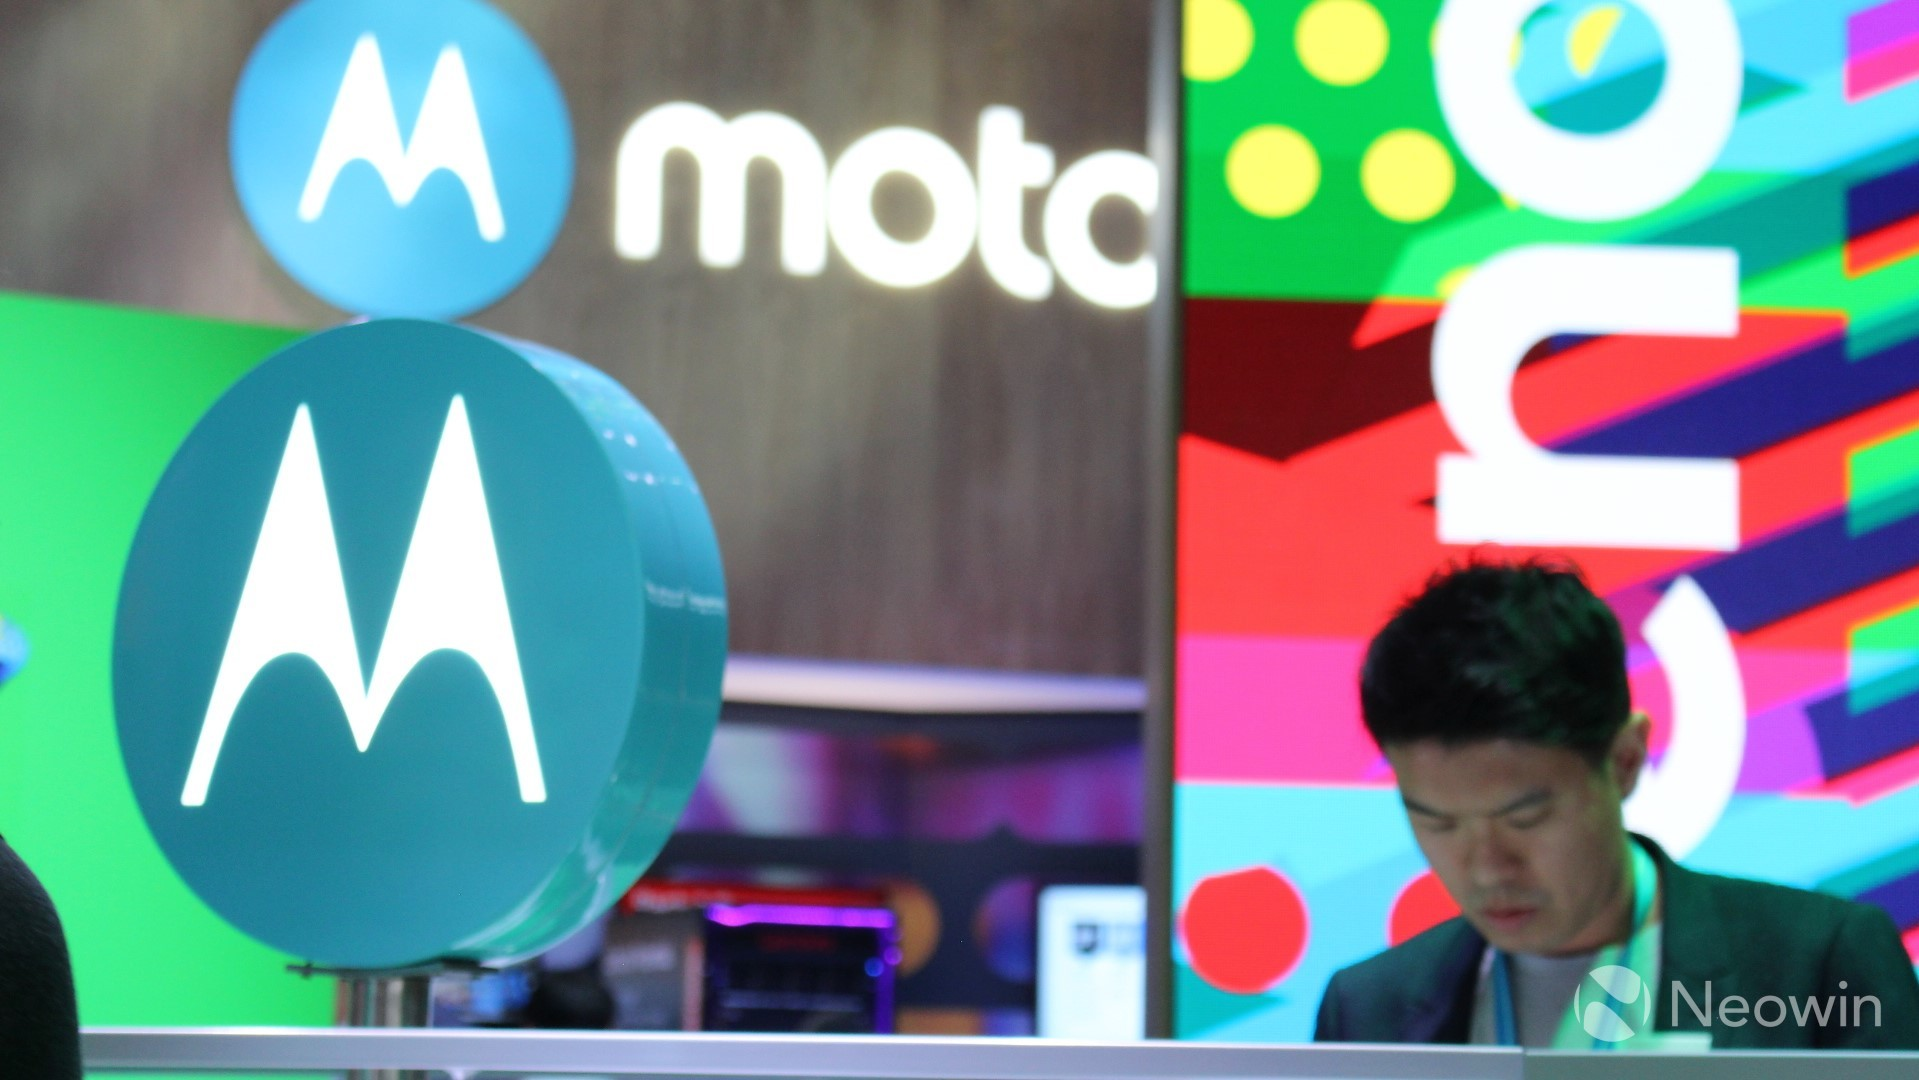 Motorola's new rumored tablet may just be the Lenovo Tab 4